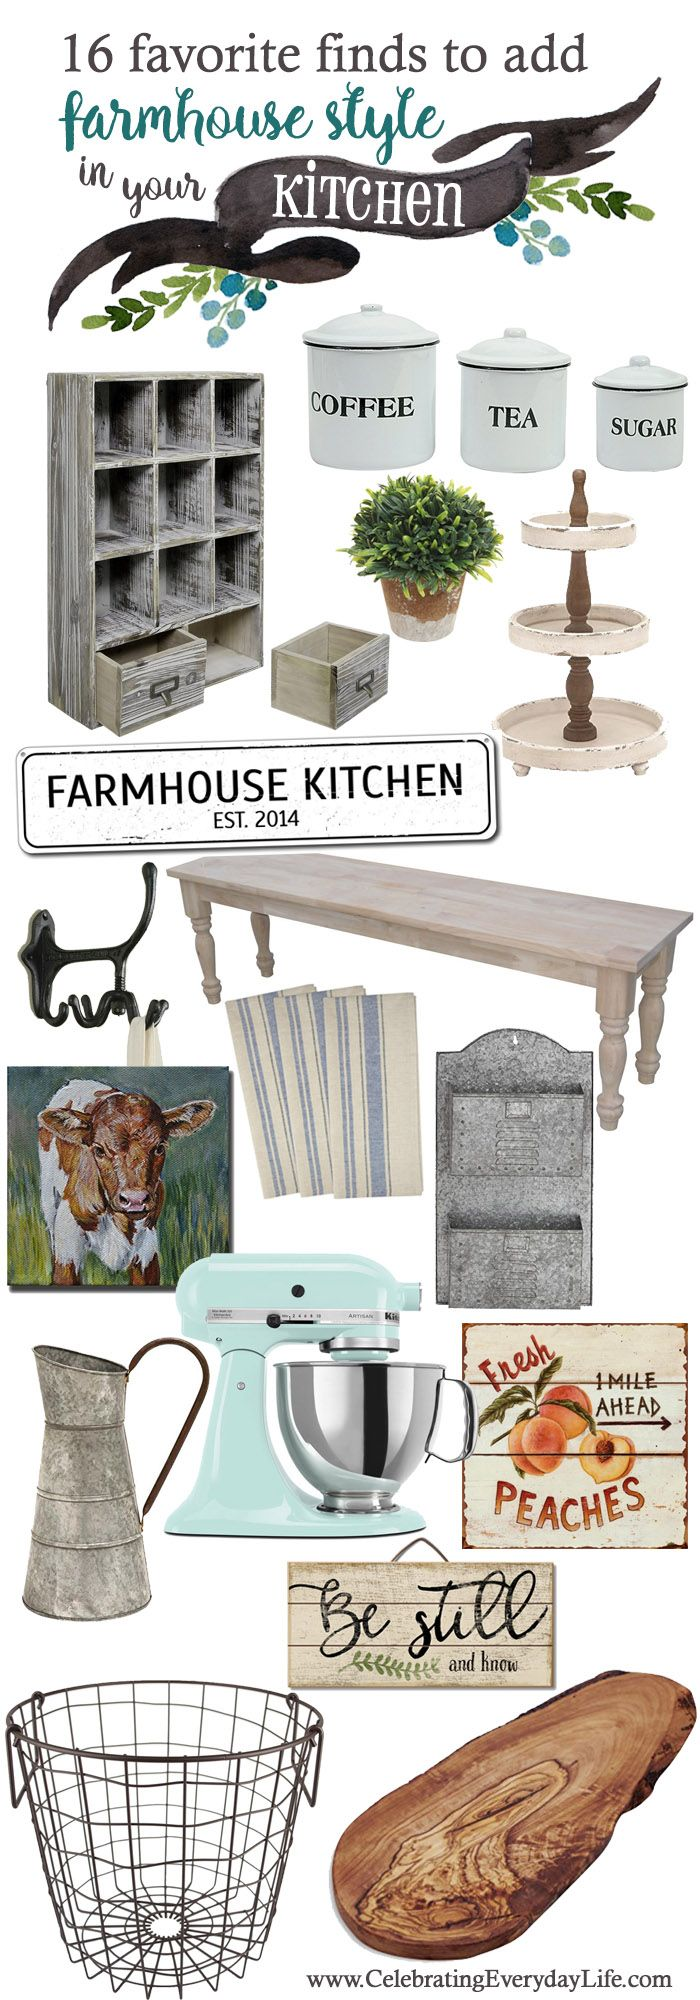 16 Favorite Finds To Add Farmhouse Style To The Kitchen